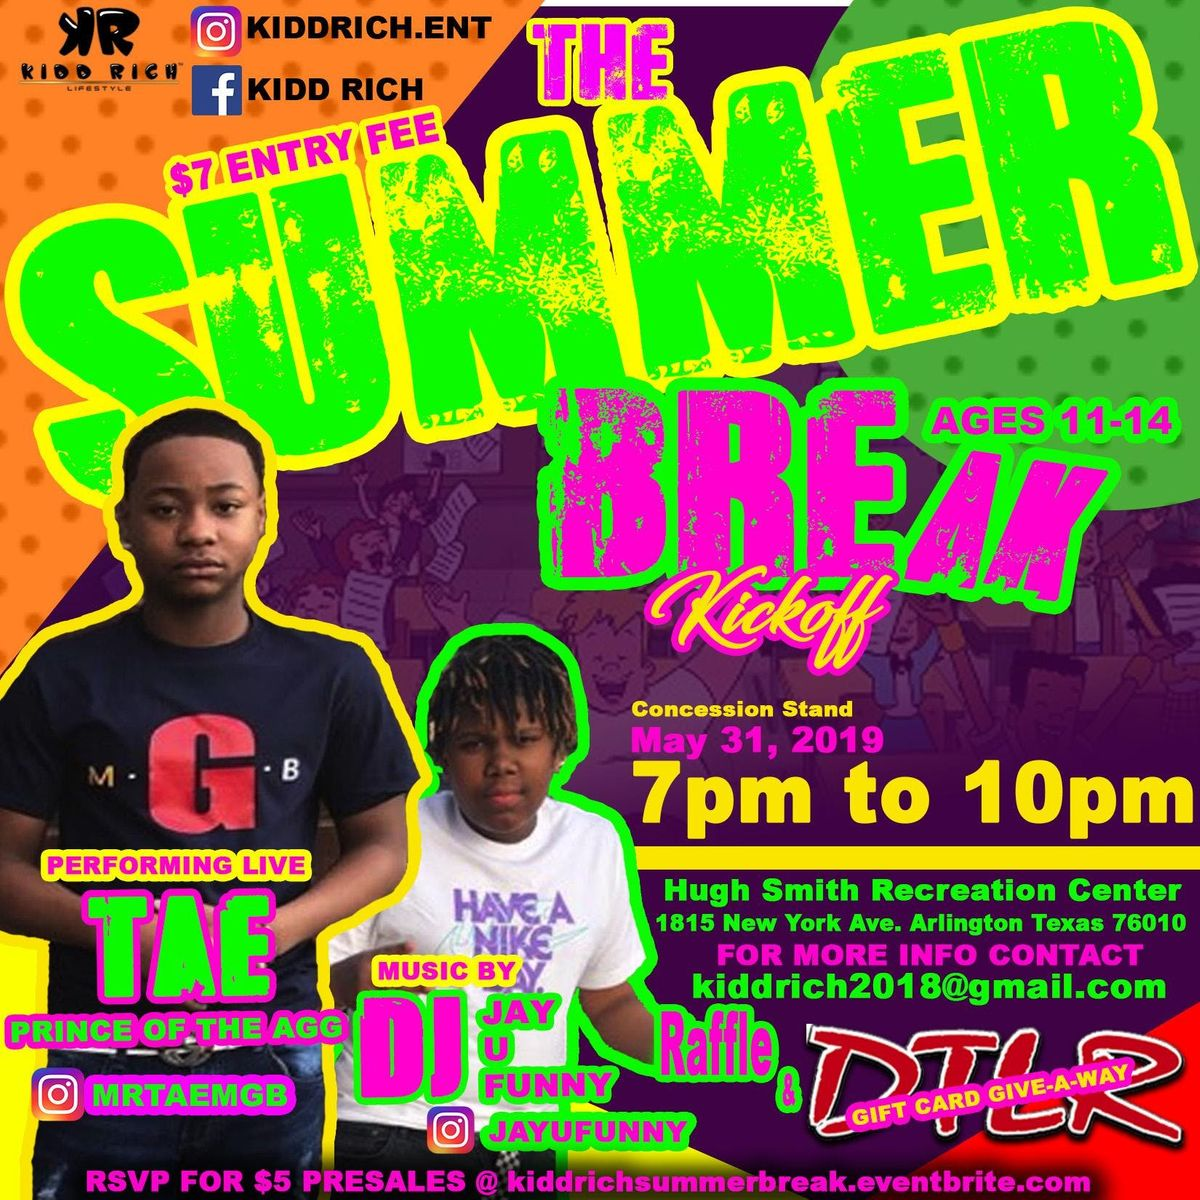 Kidd Rich Ent. Present The Summer Break KickOff